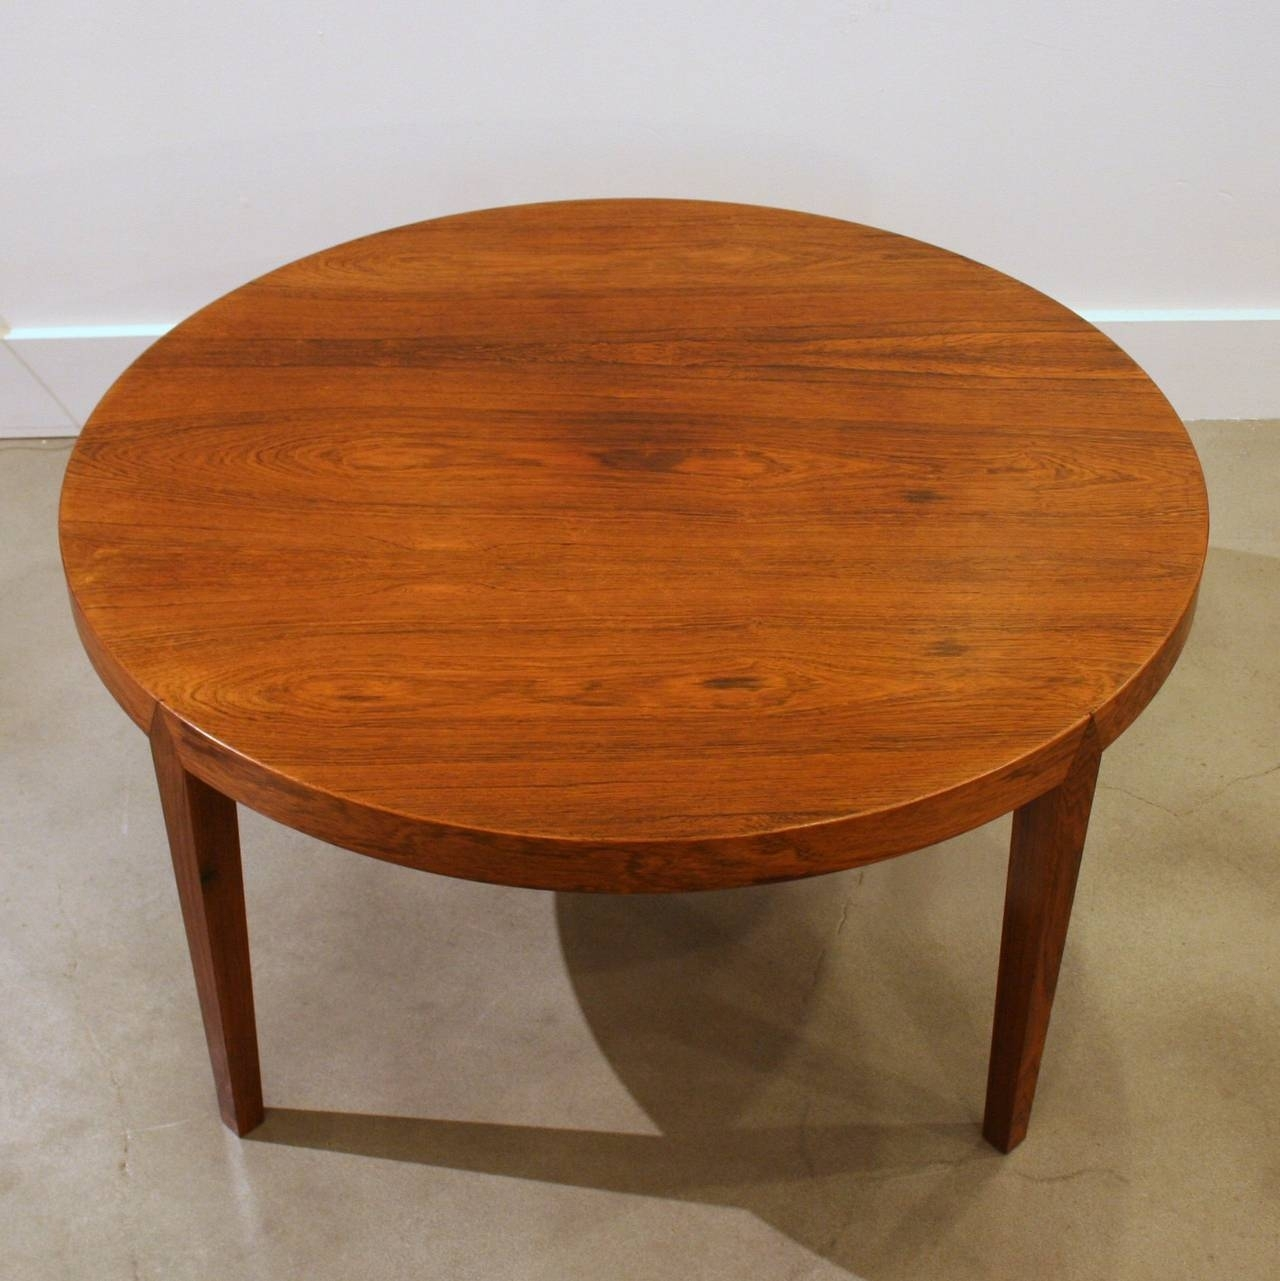 Making Teak Round Coffee Table — New Home Design throughout Round Teak Coffee Tables (Image 10 of 30)